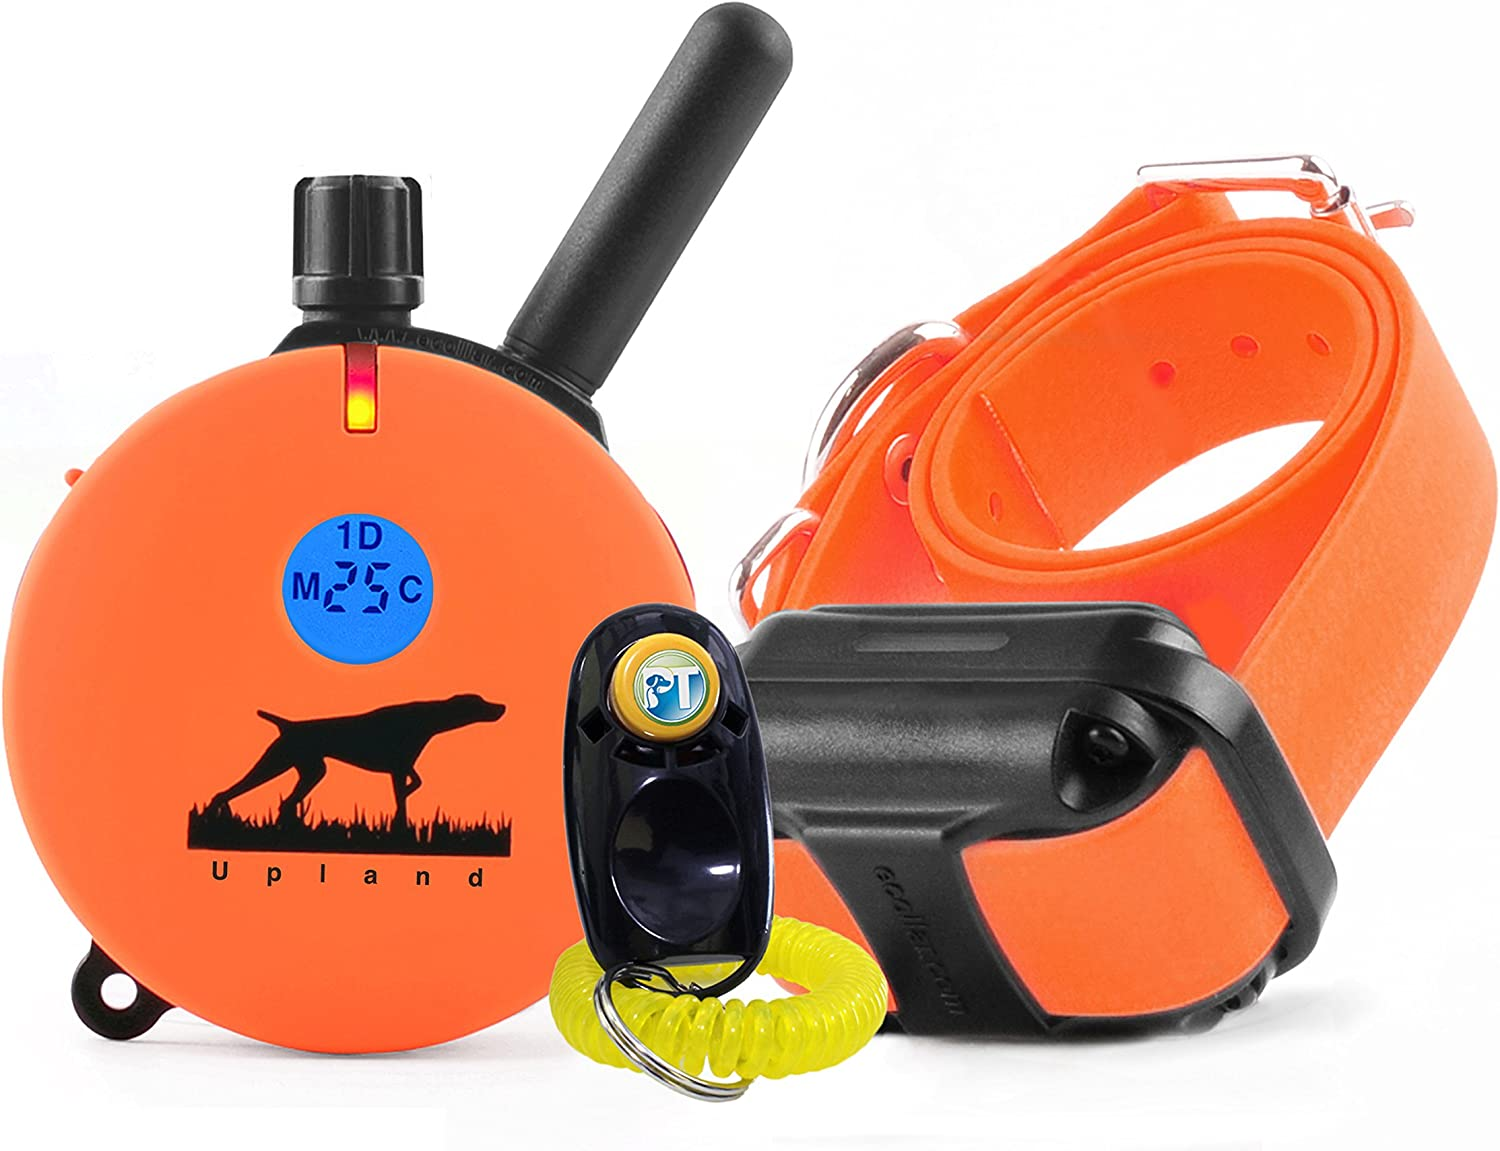 Bundle of 2 items – E-Collar – UL-1200 – 1 Mile Rechargeable Remote Waterproof Upland Hunting Trainer Educator – Static, Vibration and Sound Stimulation collar with PetsTEK Dog Training Clicker